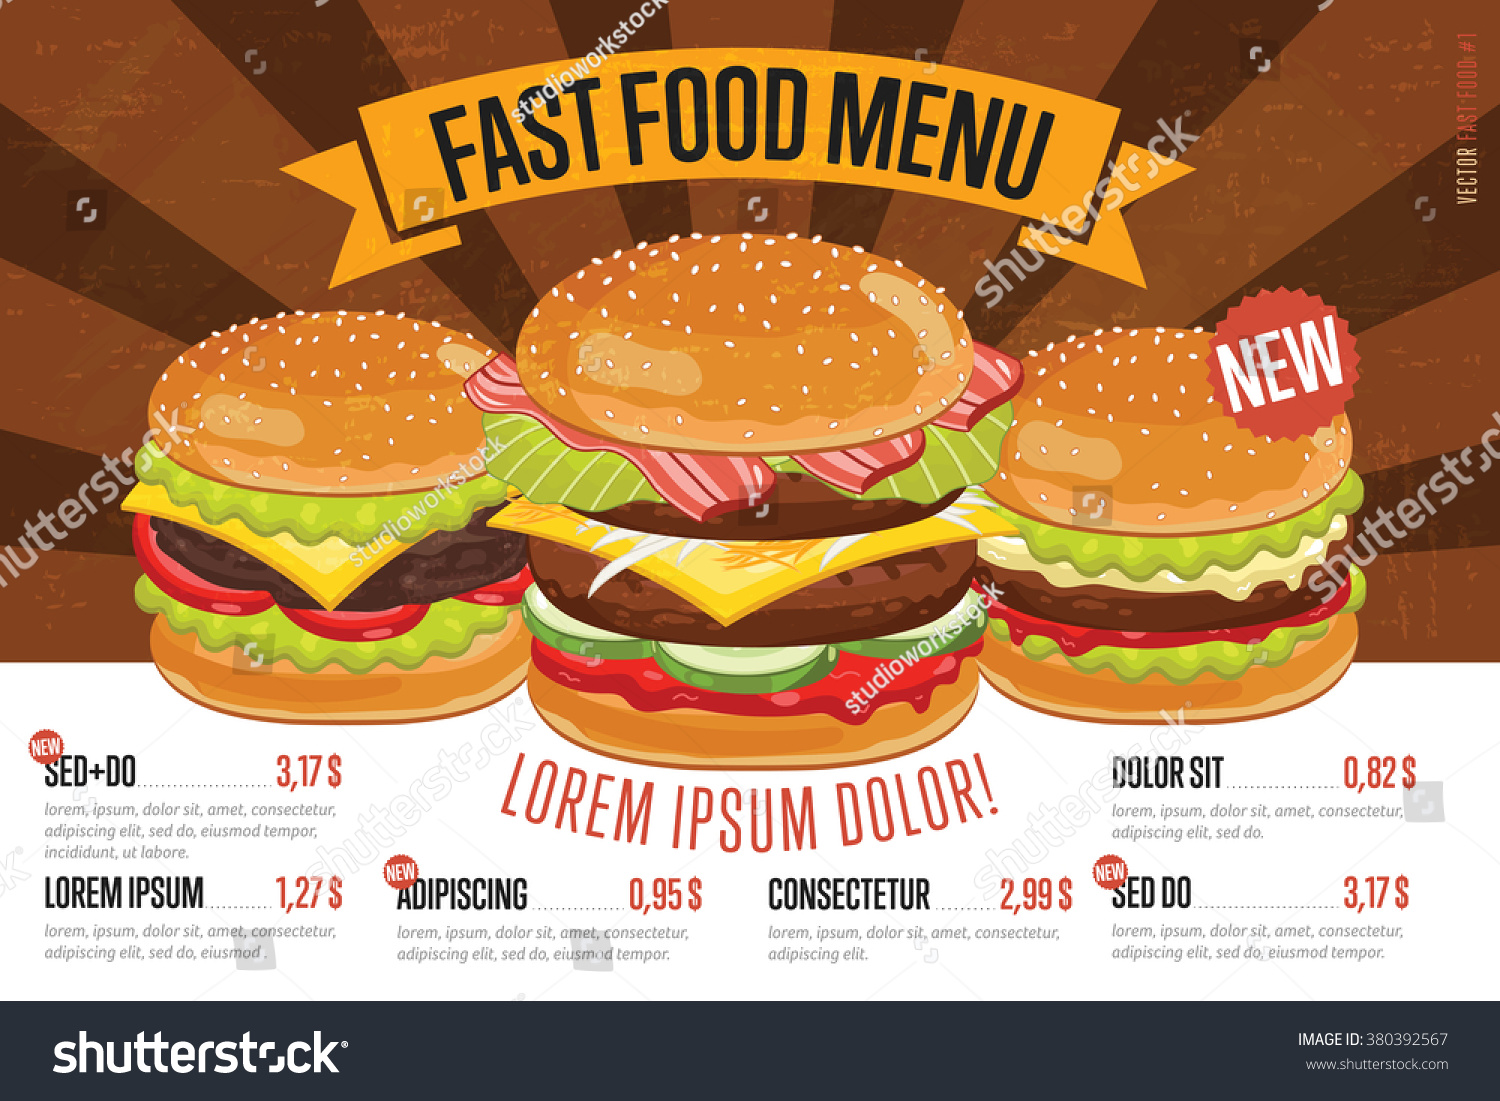 thesis on fast food consumption Food essays essay on food: essay consumption of important fruits and vegetables ensures lower level of mortality and reduces various degenerative diseases,during lifetime an individual consumes 30 tons of food on average in seemingly endless dietary varieties healthy food vs fast food.